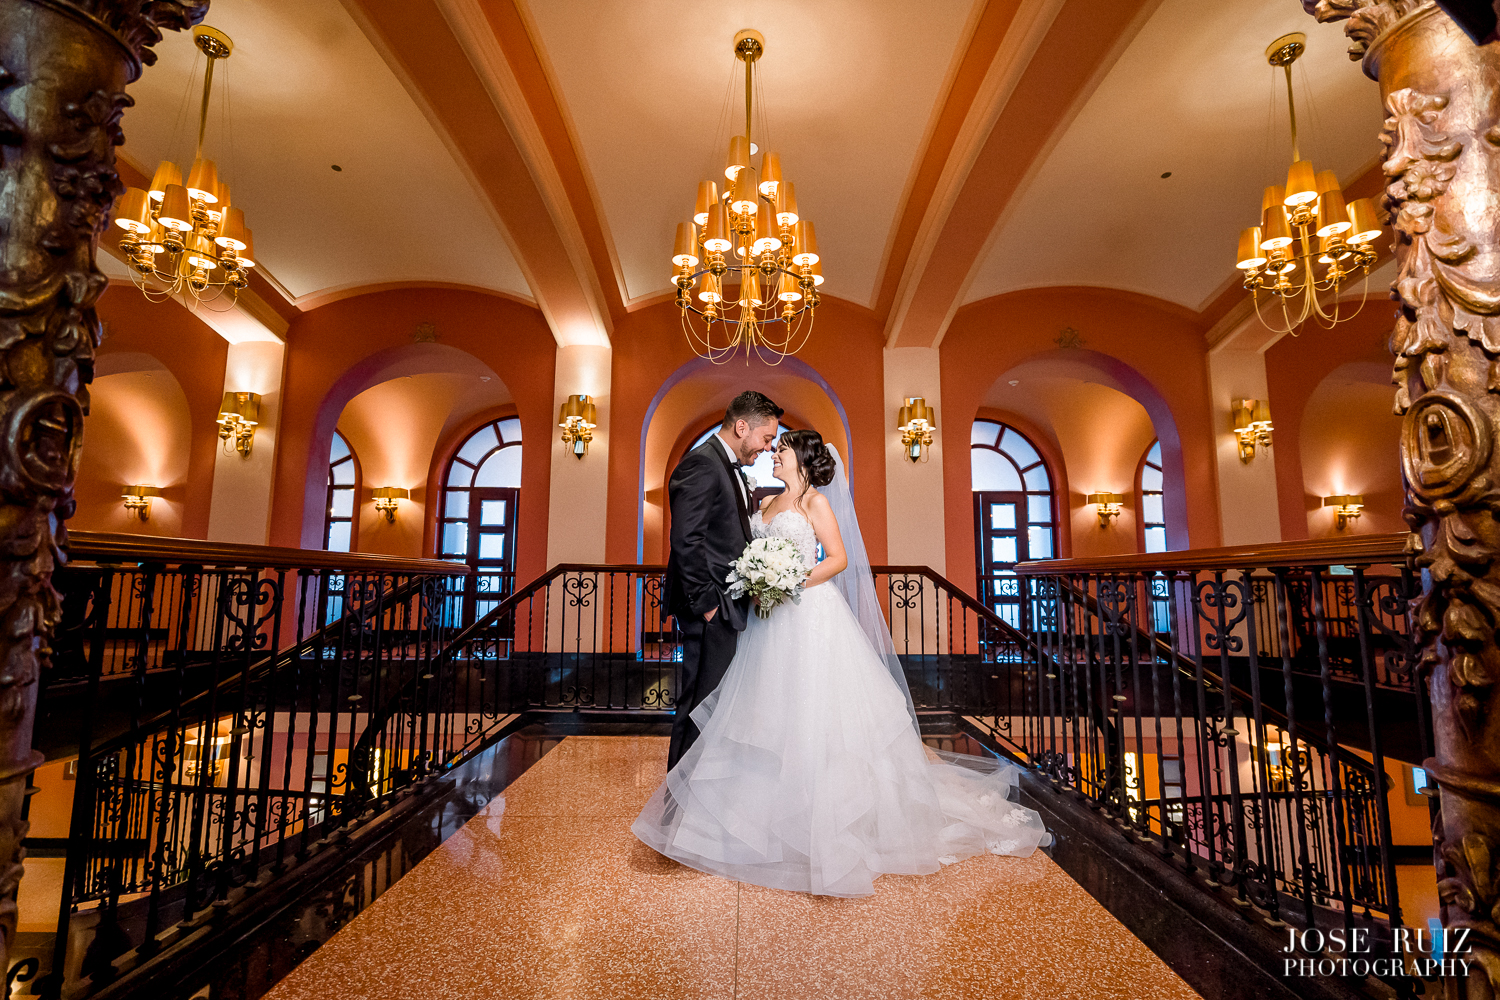 Jose Ruiz Photography- Madalyn & Joel-0039.jpg